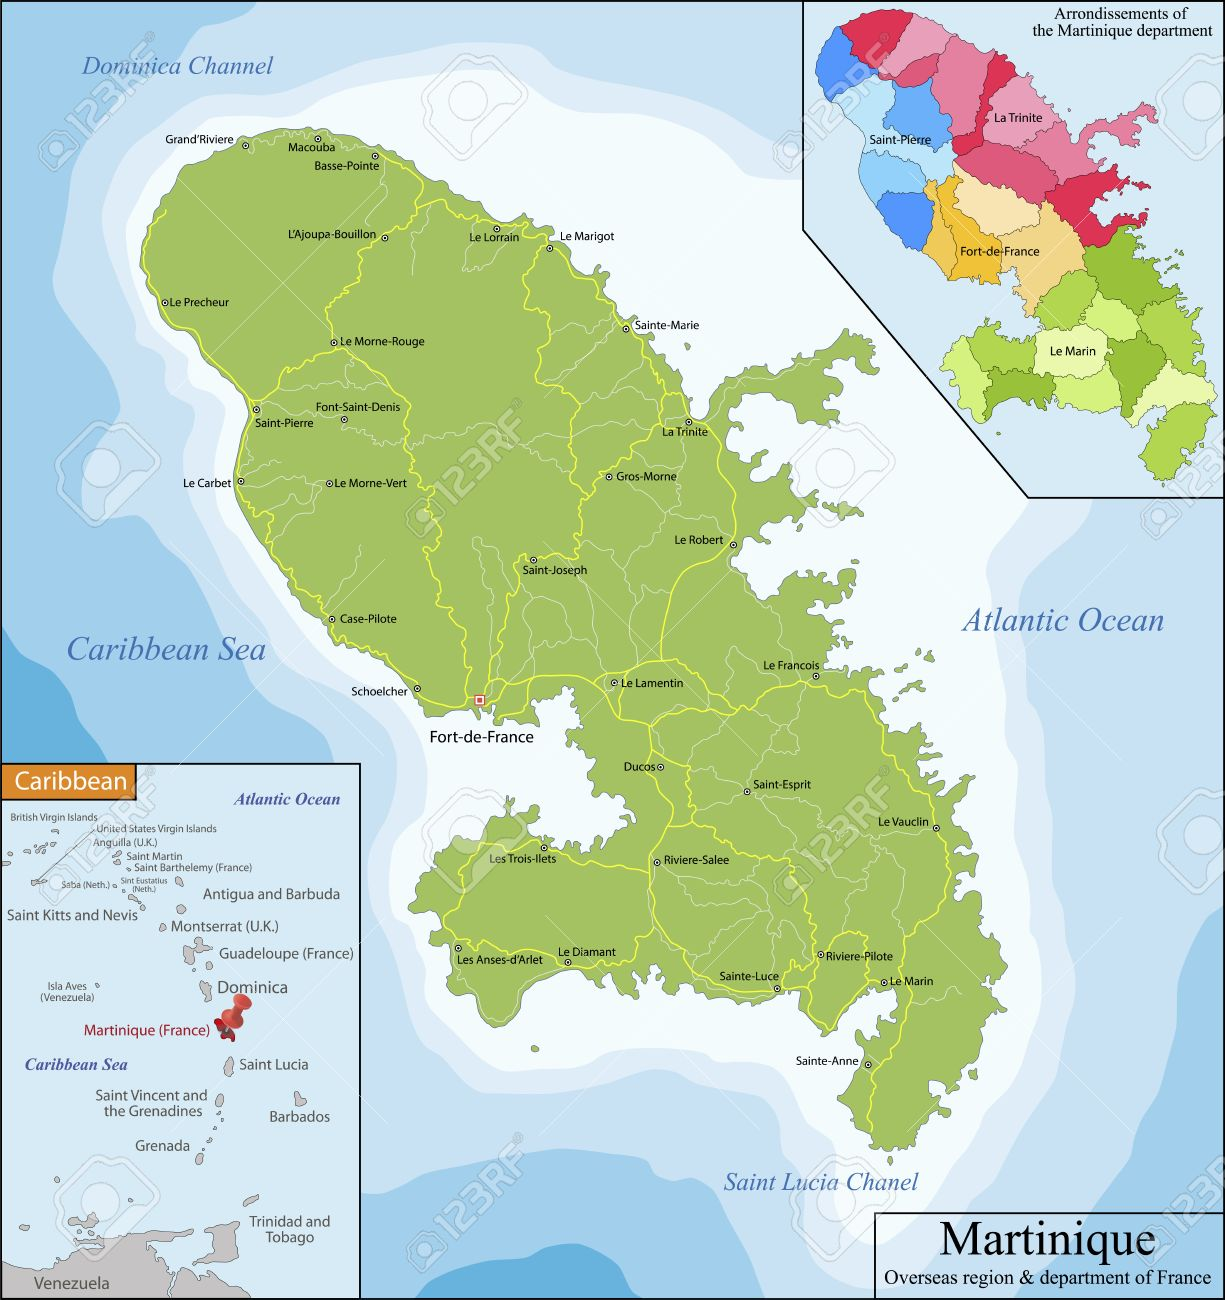 Martinique Is An Insular Region Of France Located In The Lesser